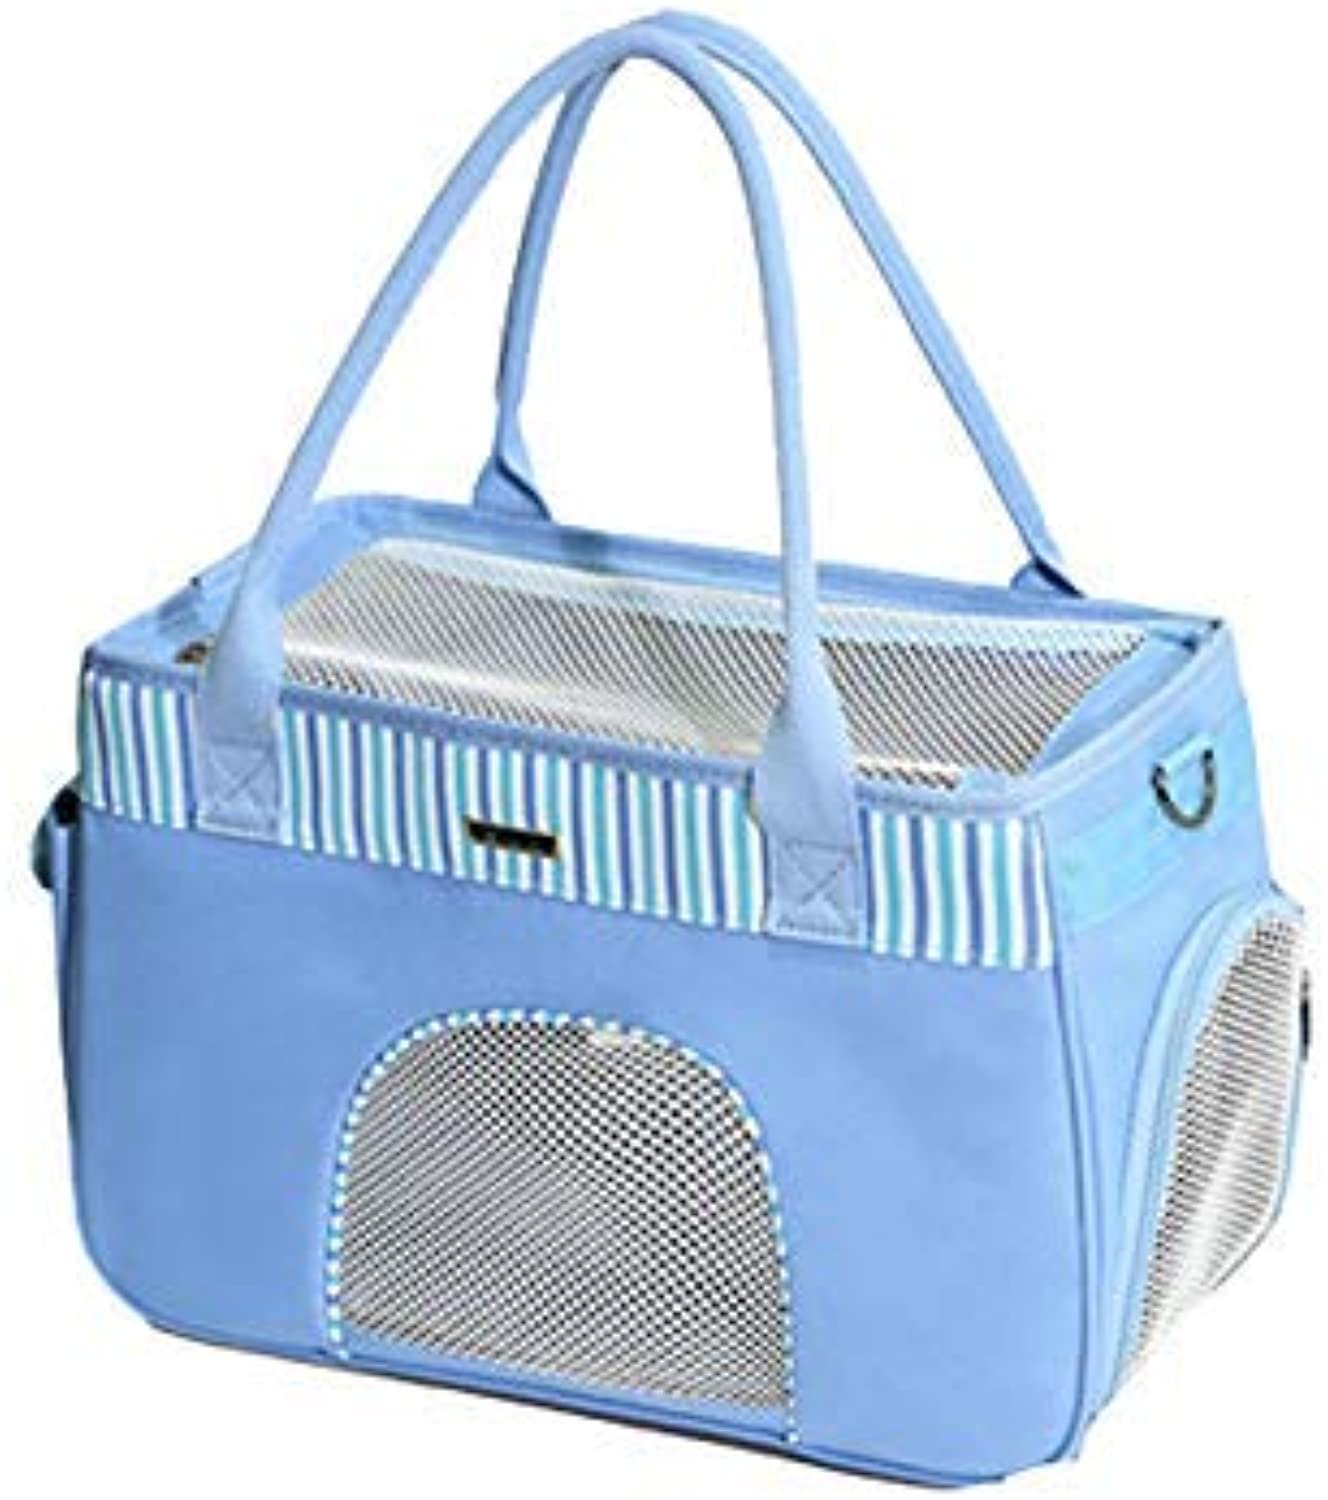 Pet Carrier Seat Pet Carrier Animal Bag Travel Friendly with Top Handle, Shoulder Strap Pet Carrier Crate